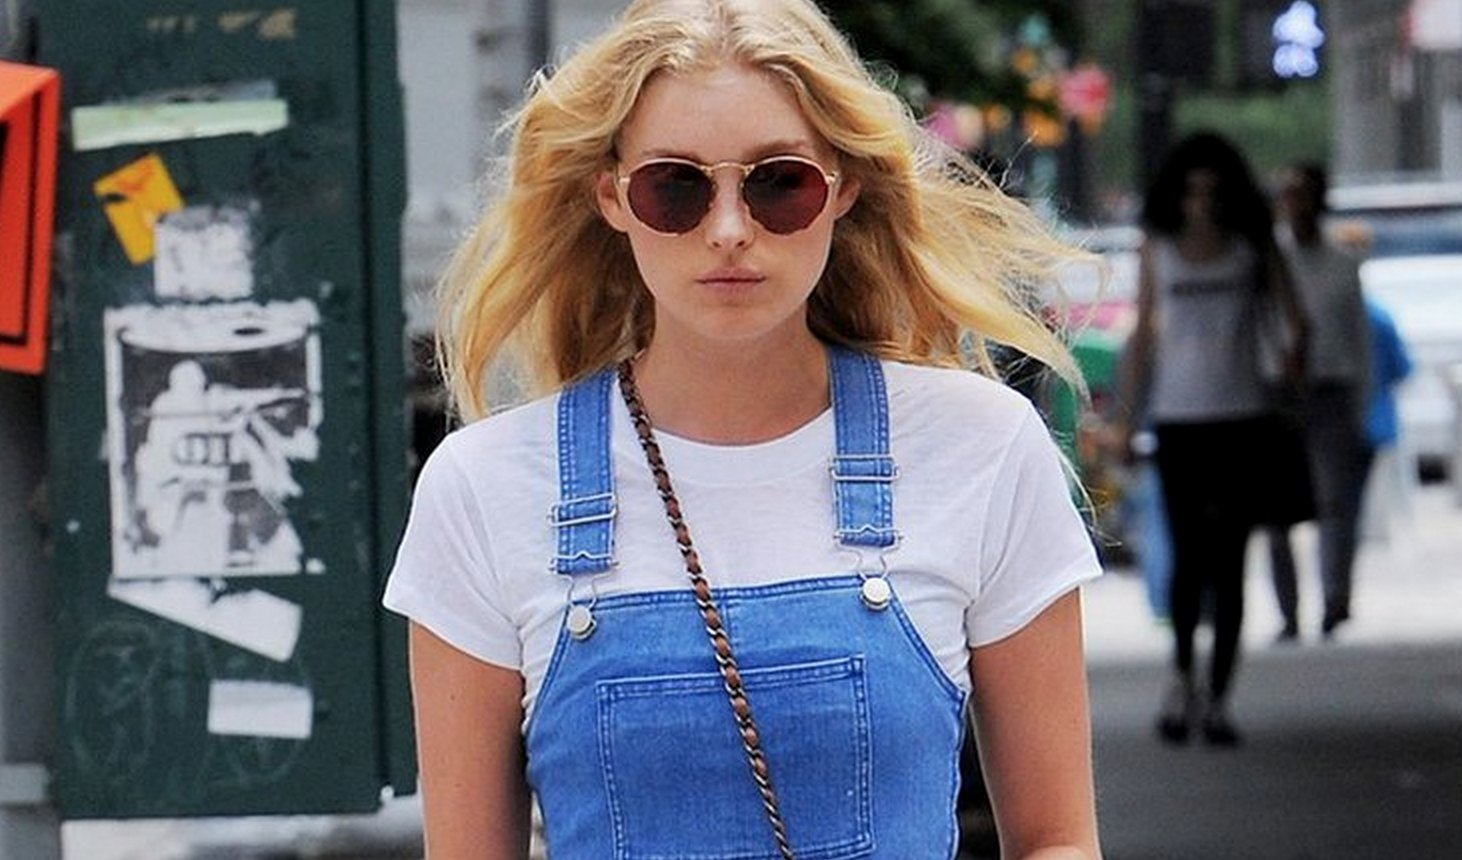 These ladies have made dungarees look absolutely amazing: https://t.co/t4JCfTYqzI https://t.co/O7XKkAHW7D